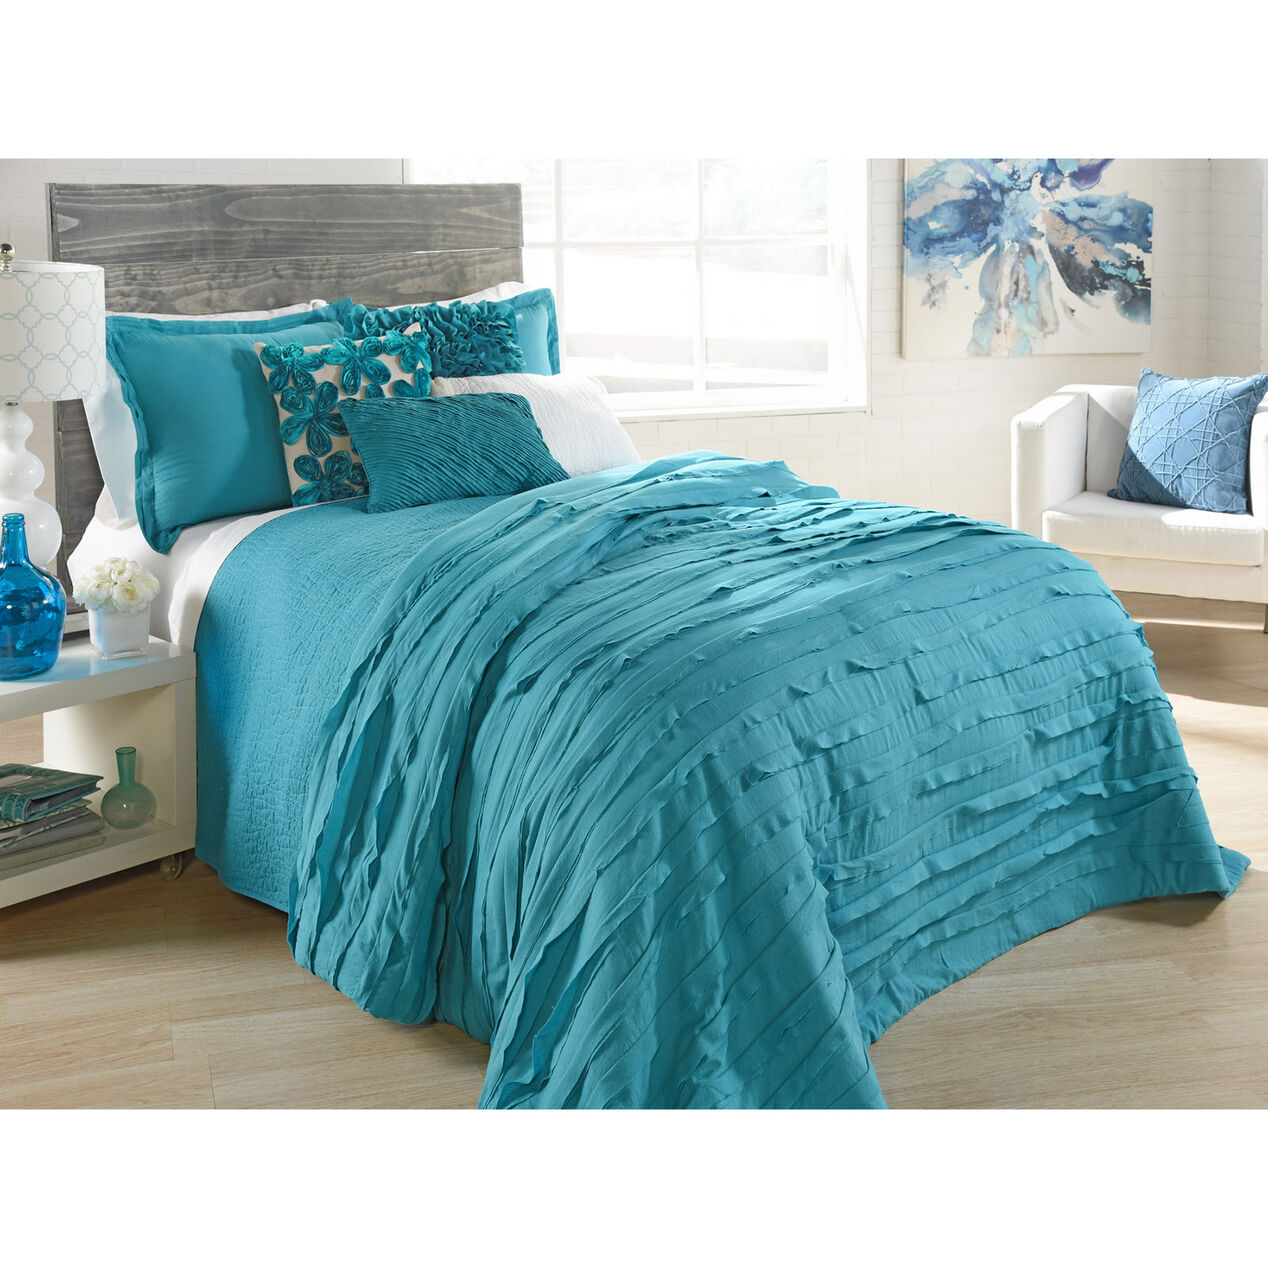 Avery Teal Ruffle Comforter Set Twin At Home